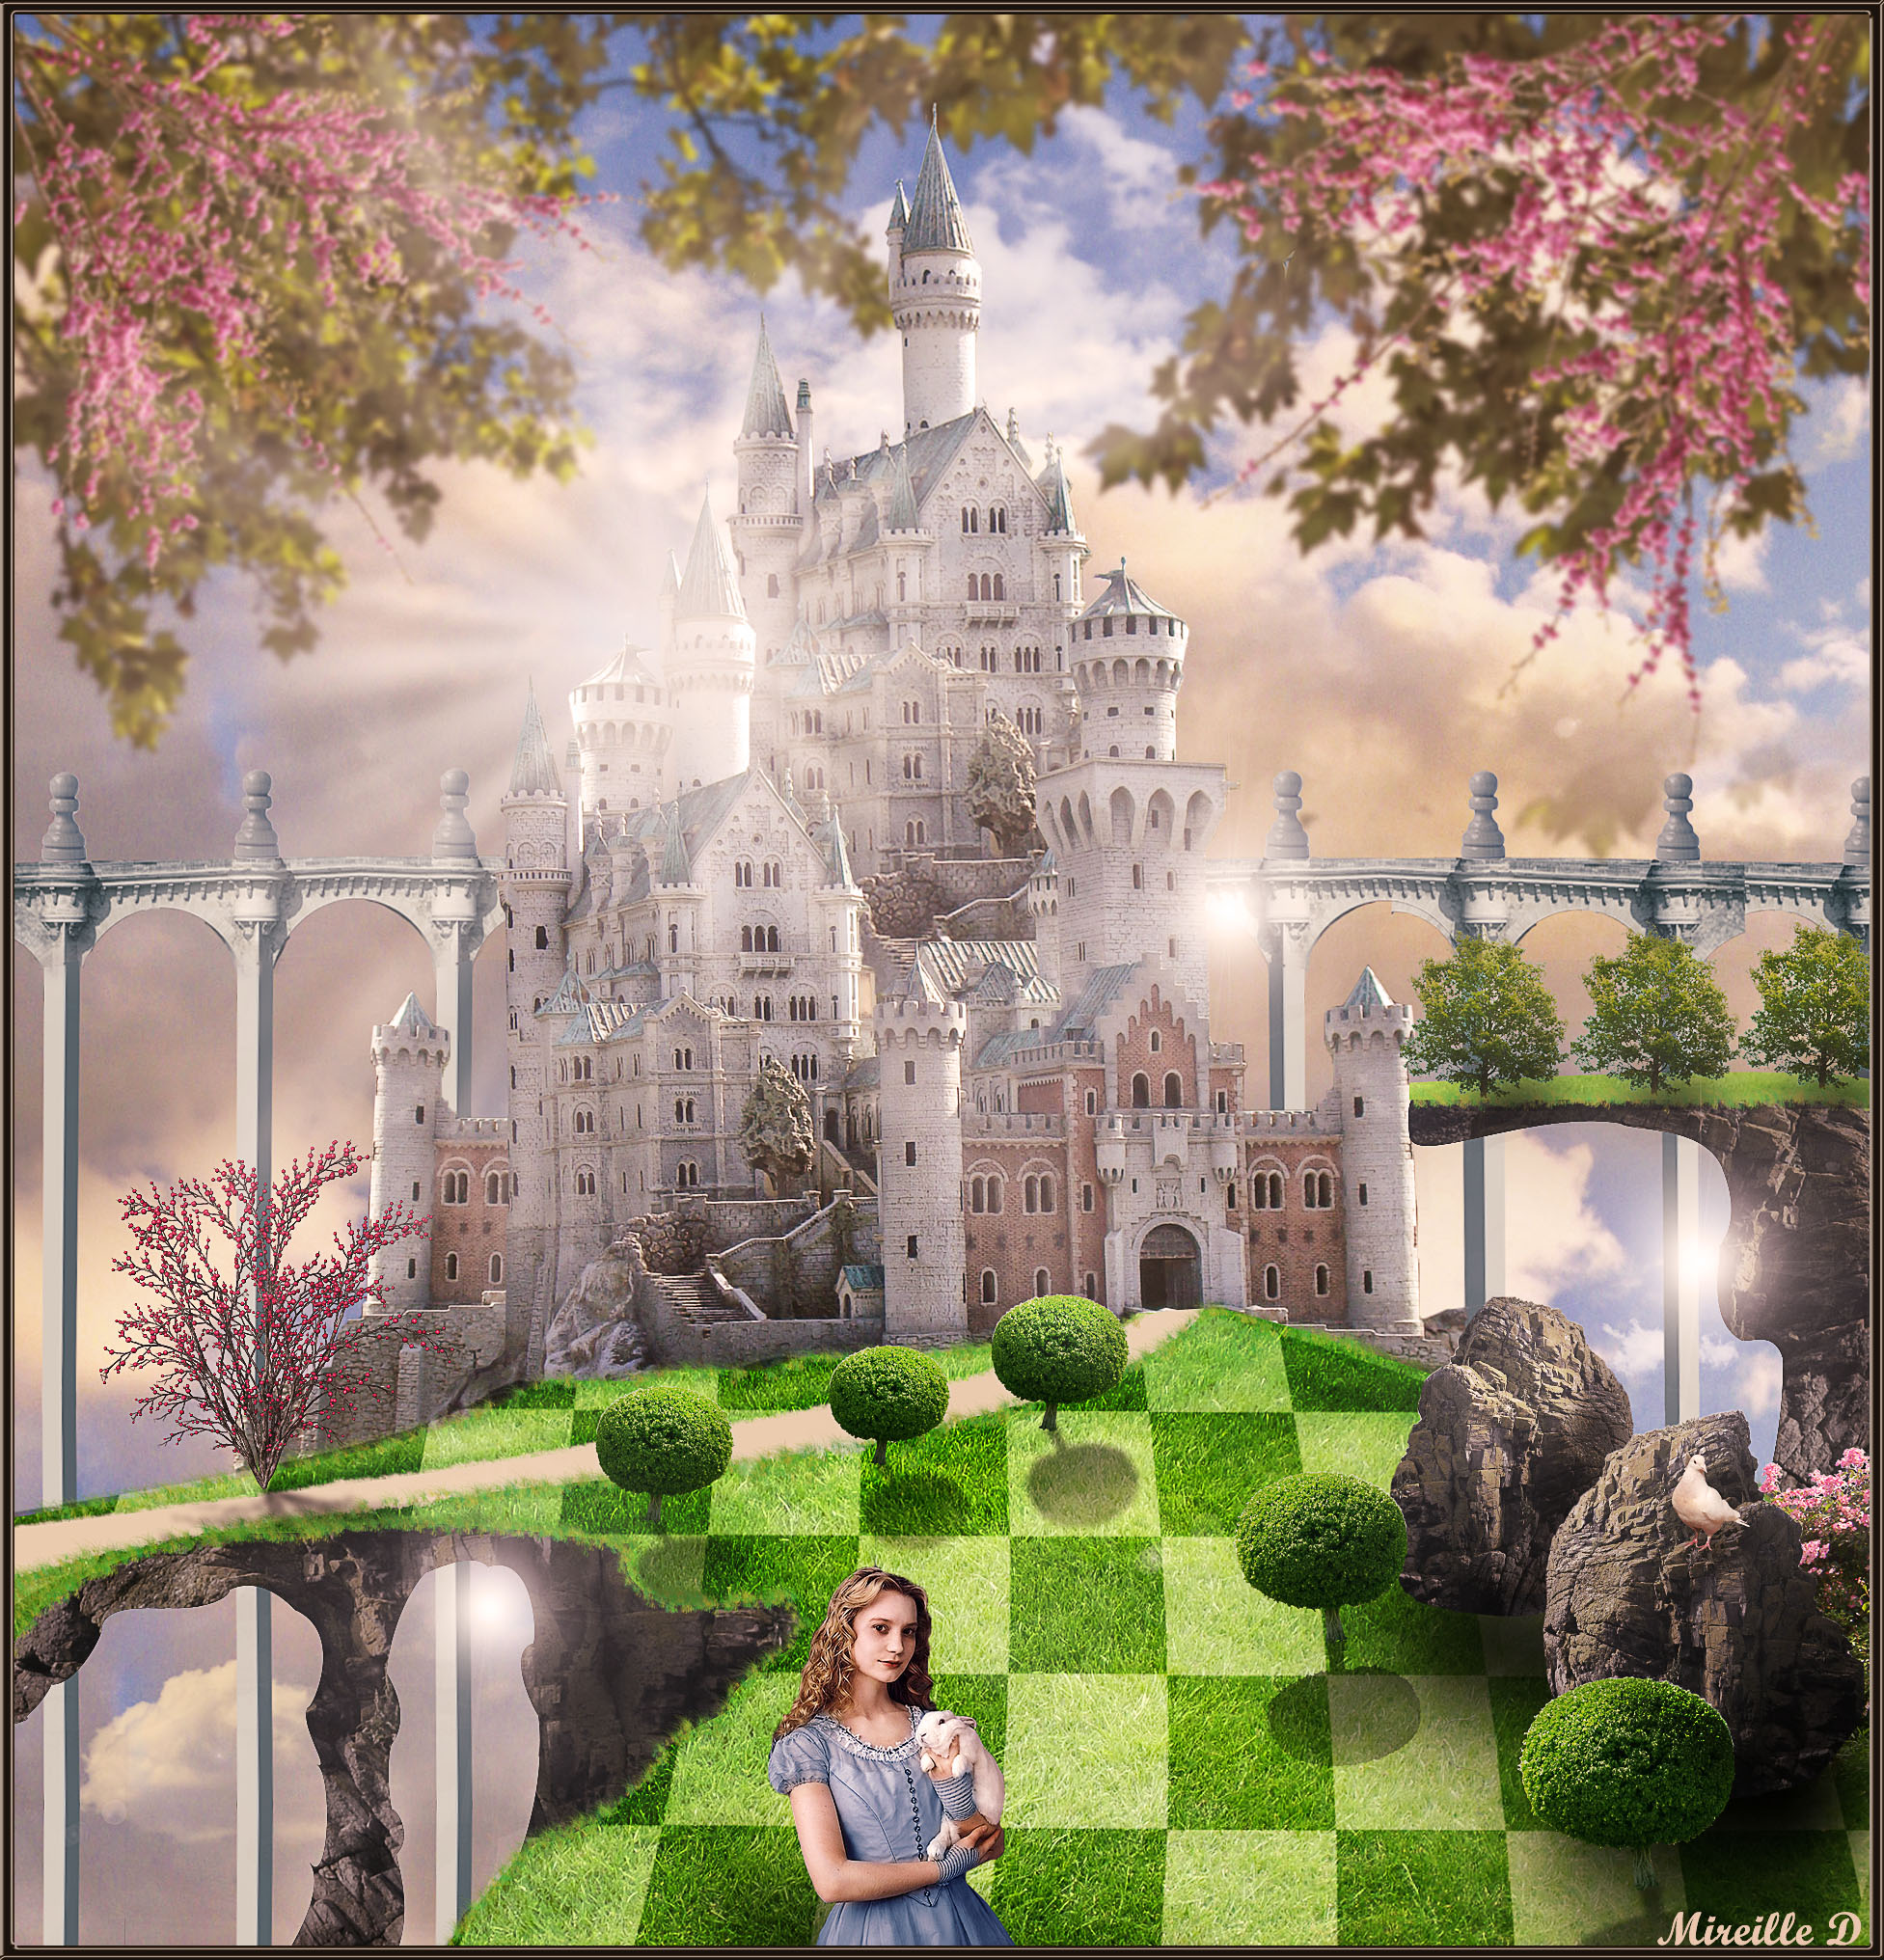 Create a Fantasy Castle in Photoshop Inspired by The Movie